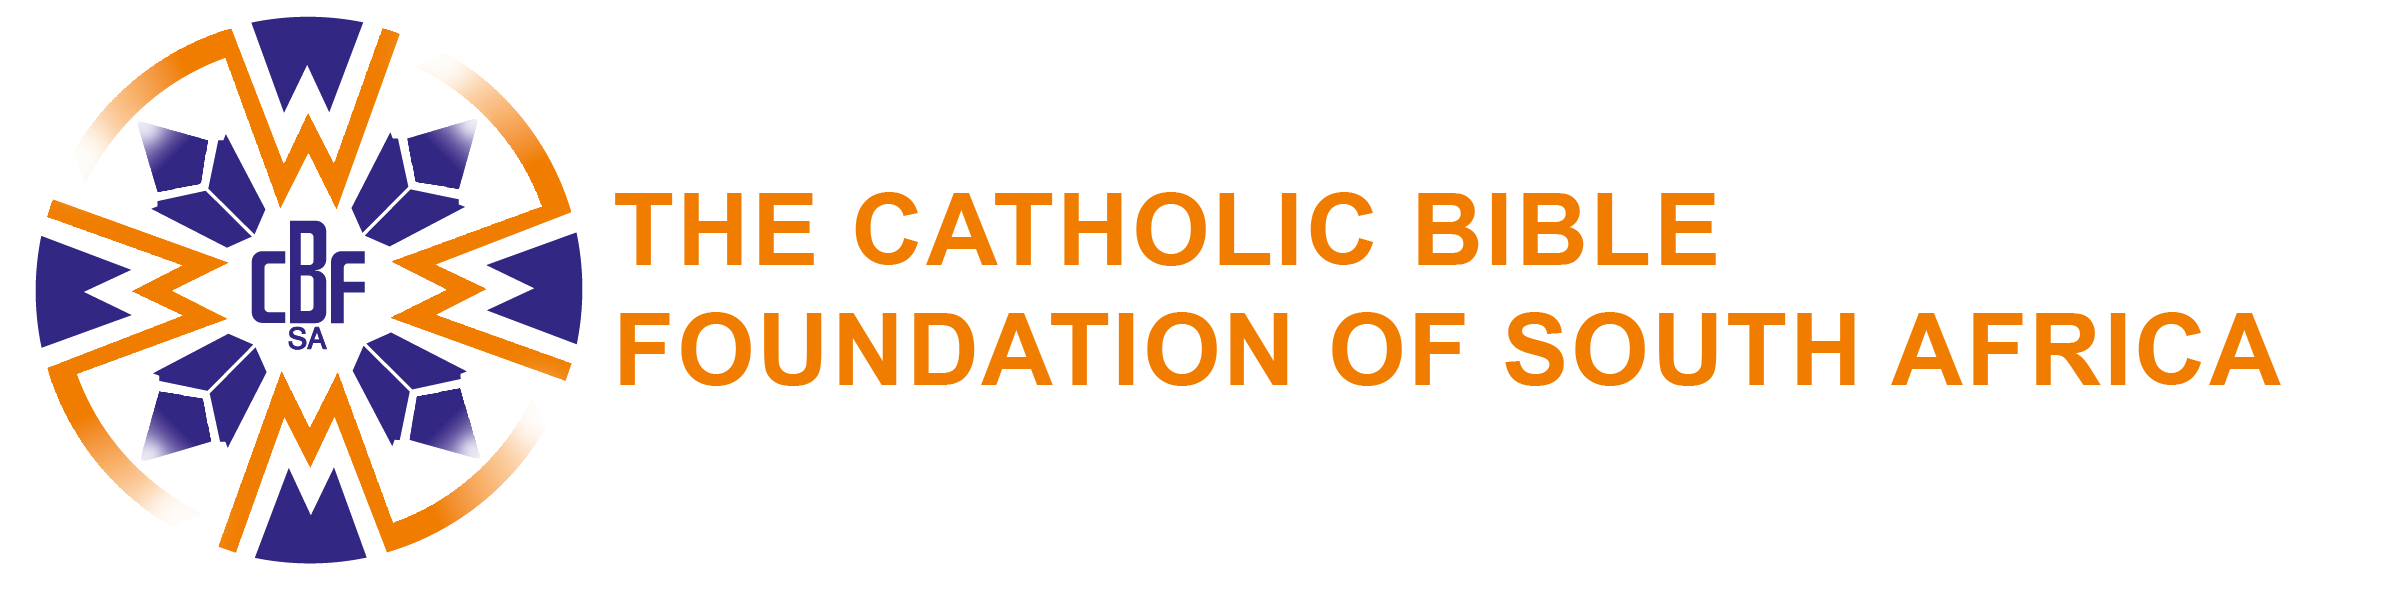 Catholic Bible Foundation SA